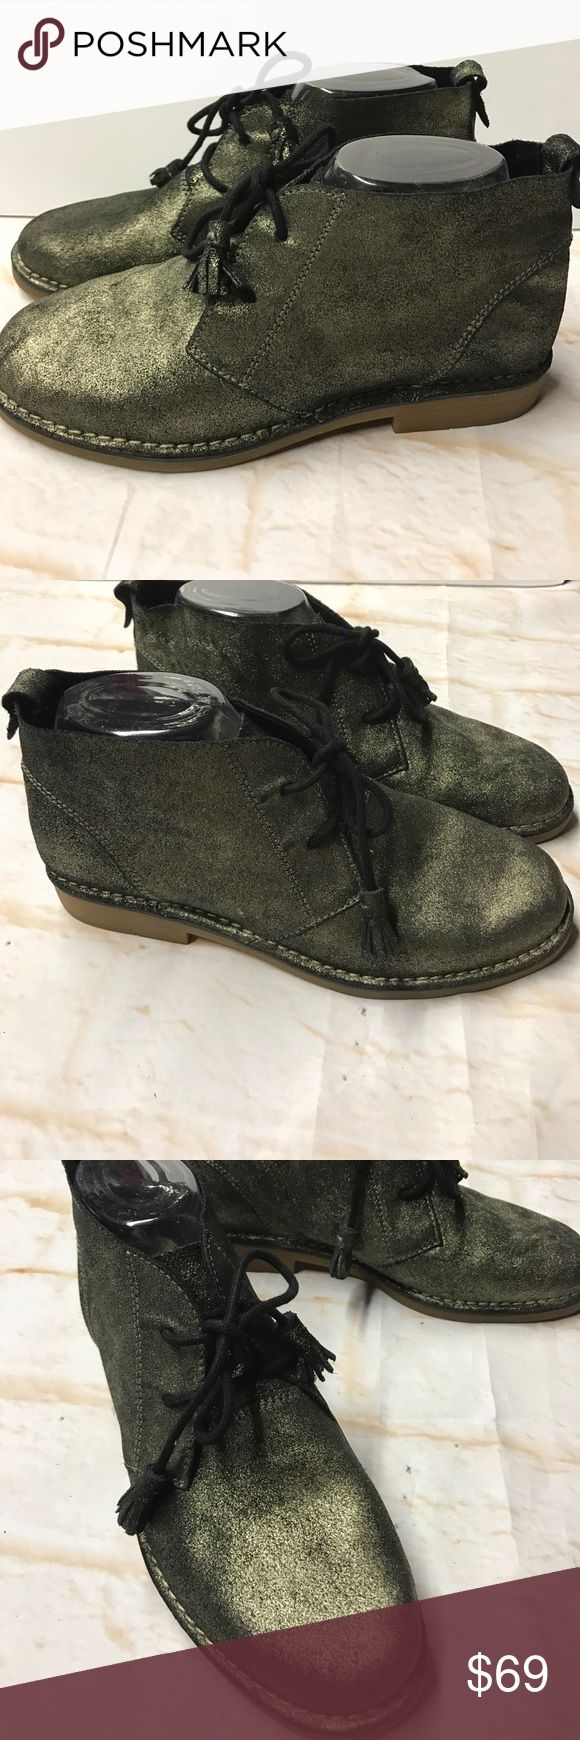 Hushpuppies Catelyn Ankle Boot Metallic Sz 9 Suede New without box. Size 9 Wide Large. Gold metallic over Suede. Cute tassel laces. Non smoking home. Hush Puppies Shoes Ankle Boots & Booties